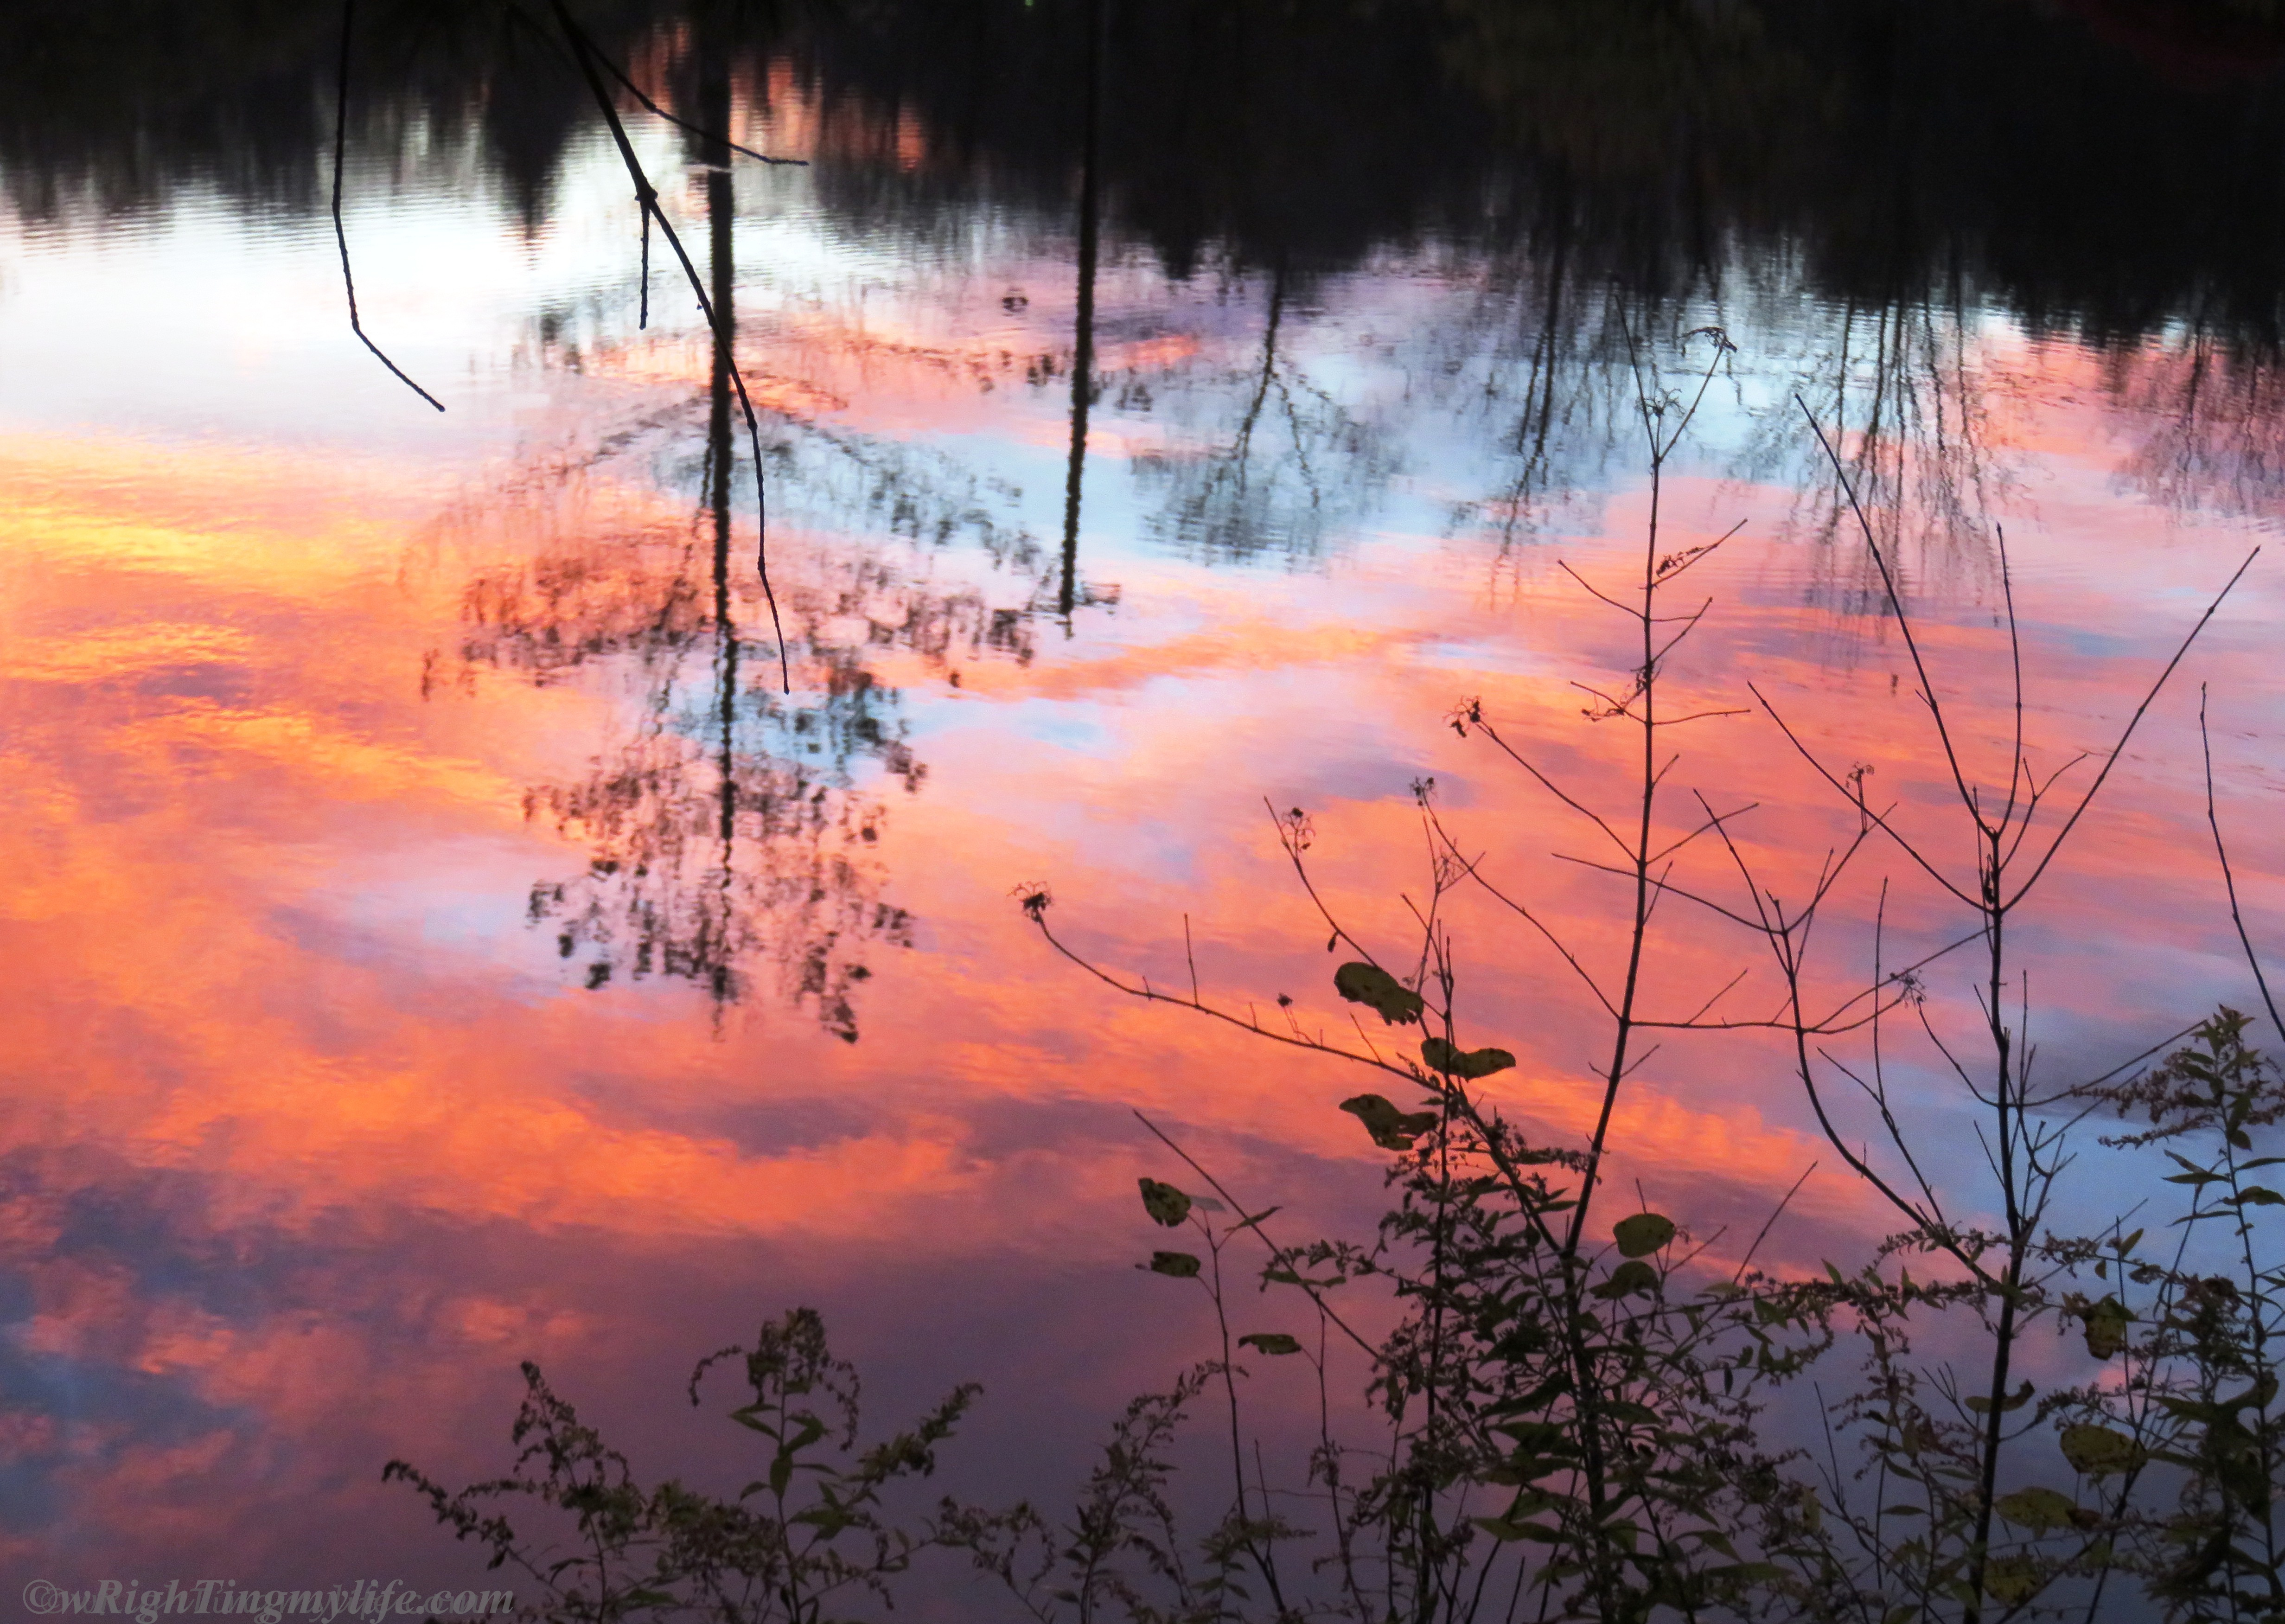 Vibrant sunset reflected among silhoutted trees and brush in pond